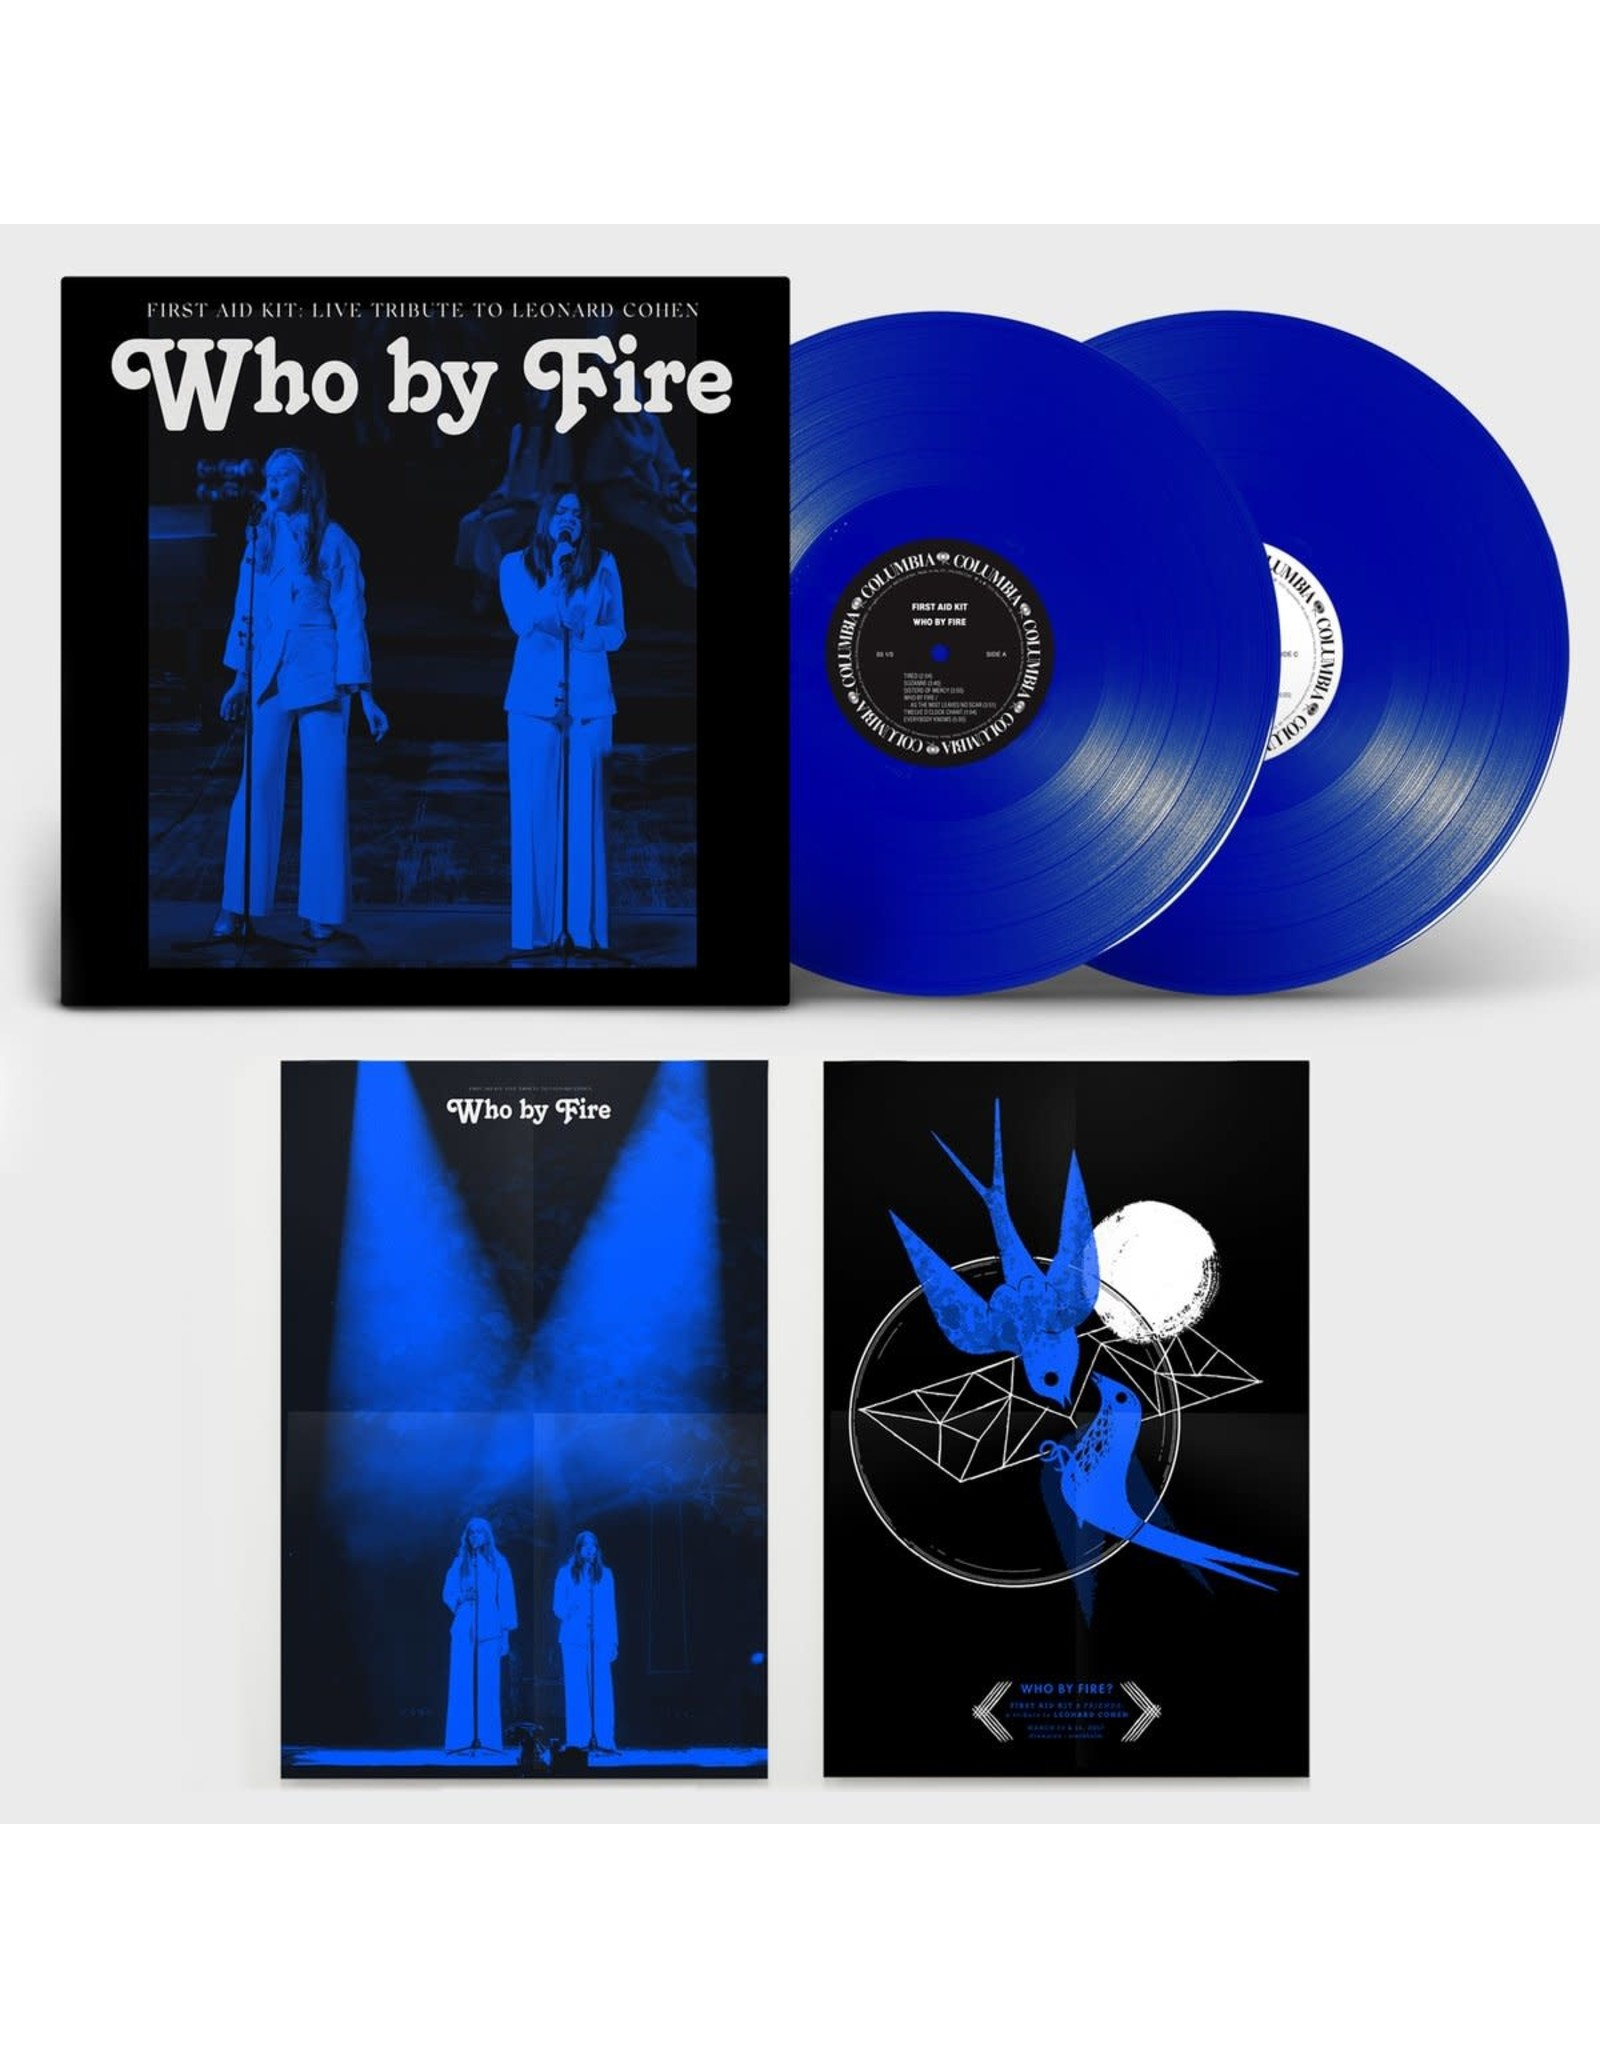 First Aid Kit - Who by Fire (Live Tribute to Leonard Cohen) 2LP (blue)